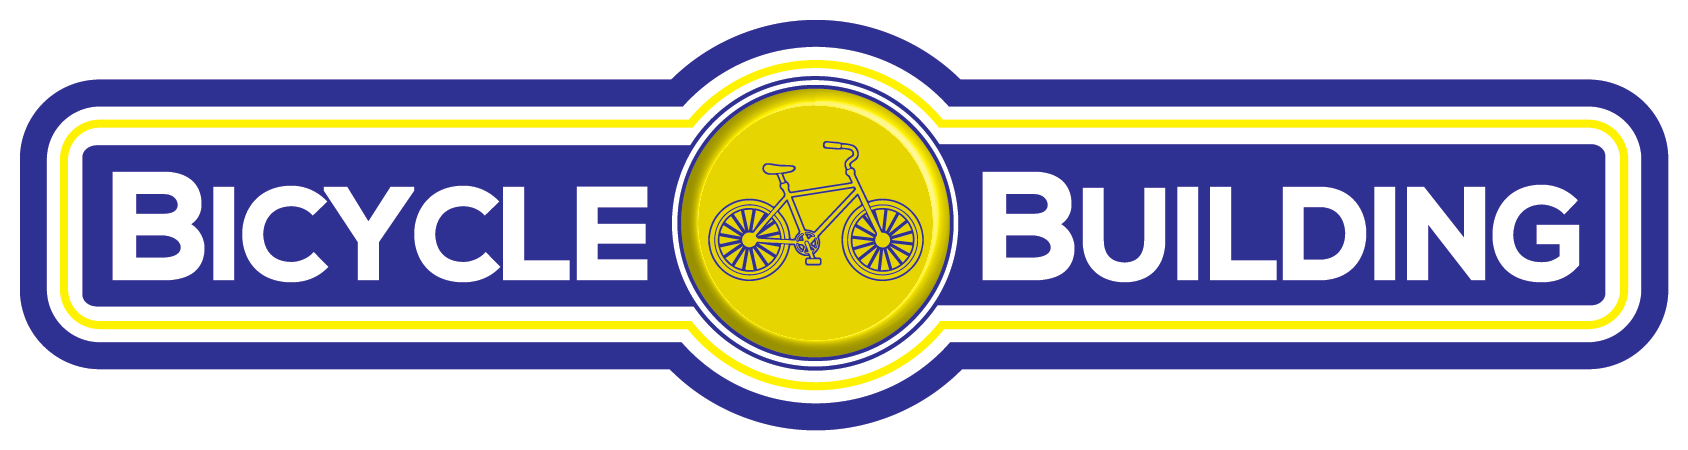 Bicycle Building